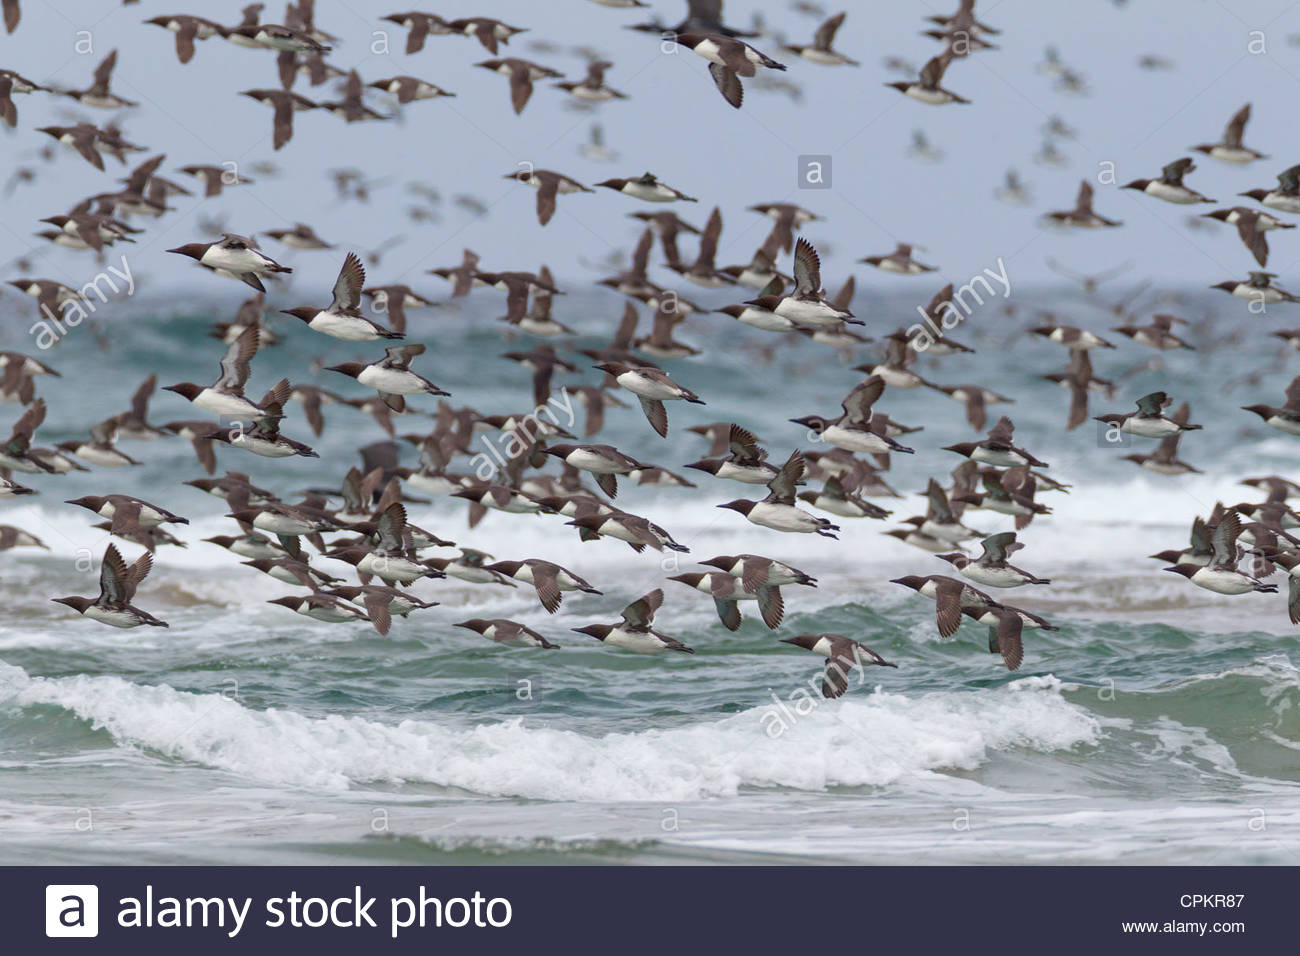 A large flock of Common Murres (Uria aalge), also called Common Guillemots, flies over Pacific Ocean near Cannon Stock Photo